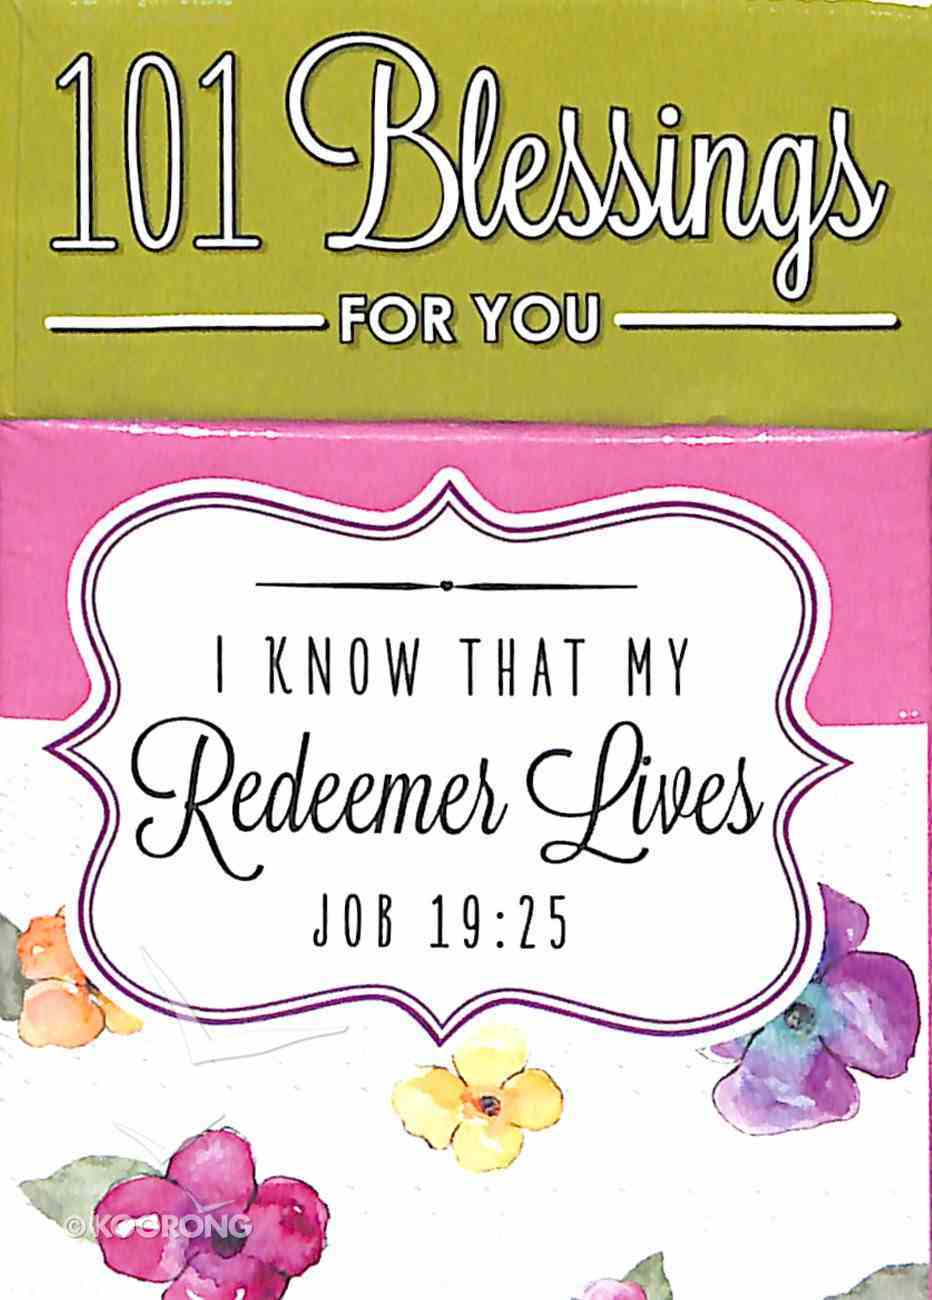 Box of Blessings: 101 Blessings For You Redeemer Lives (Job 19 25) Stationery